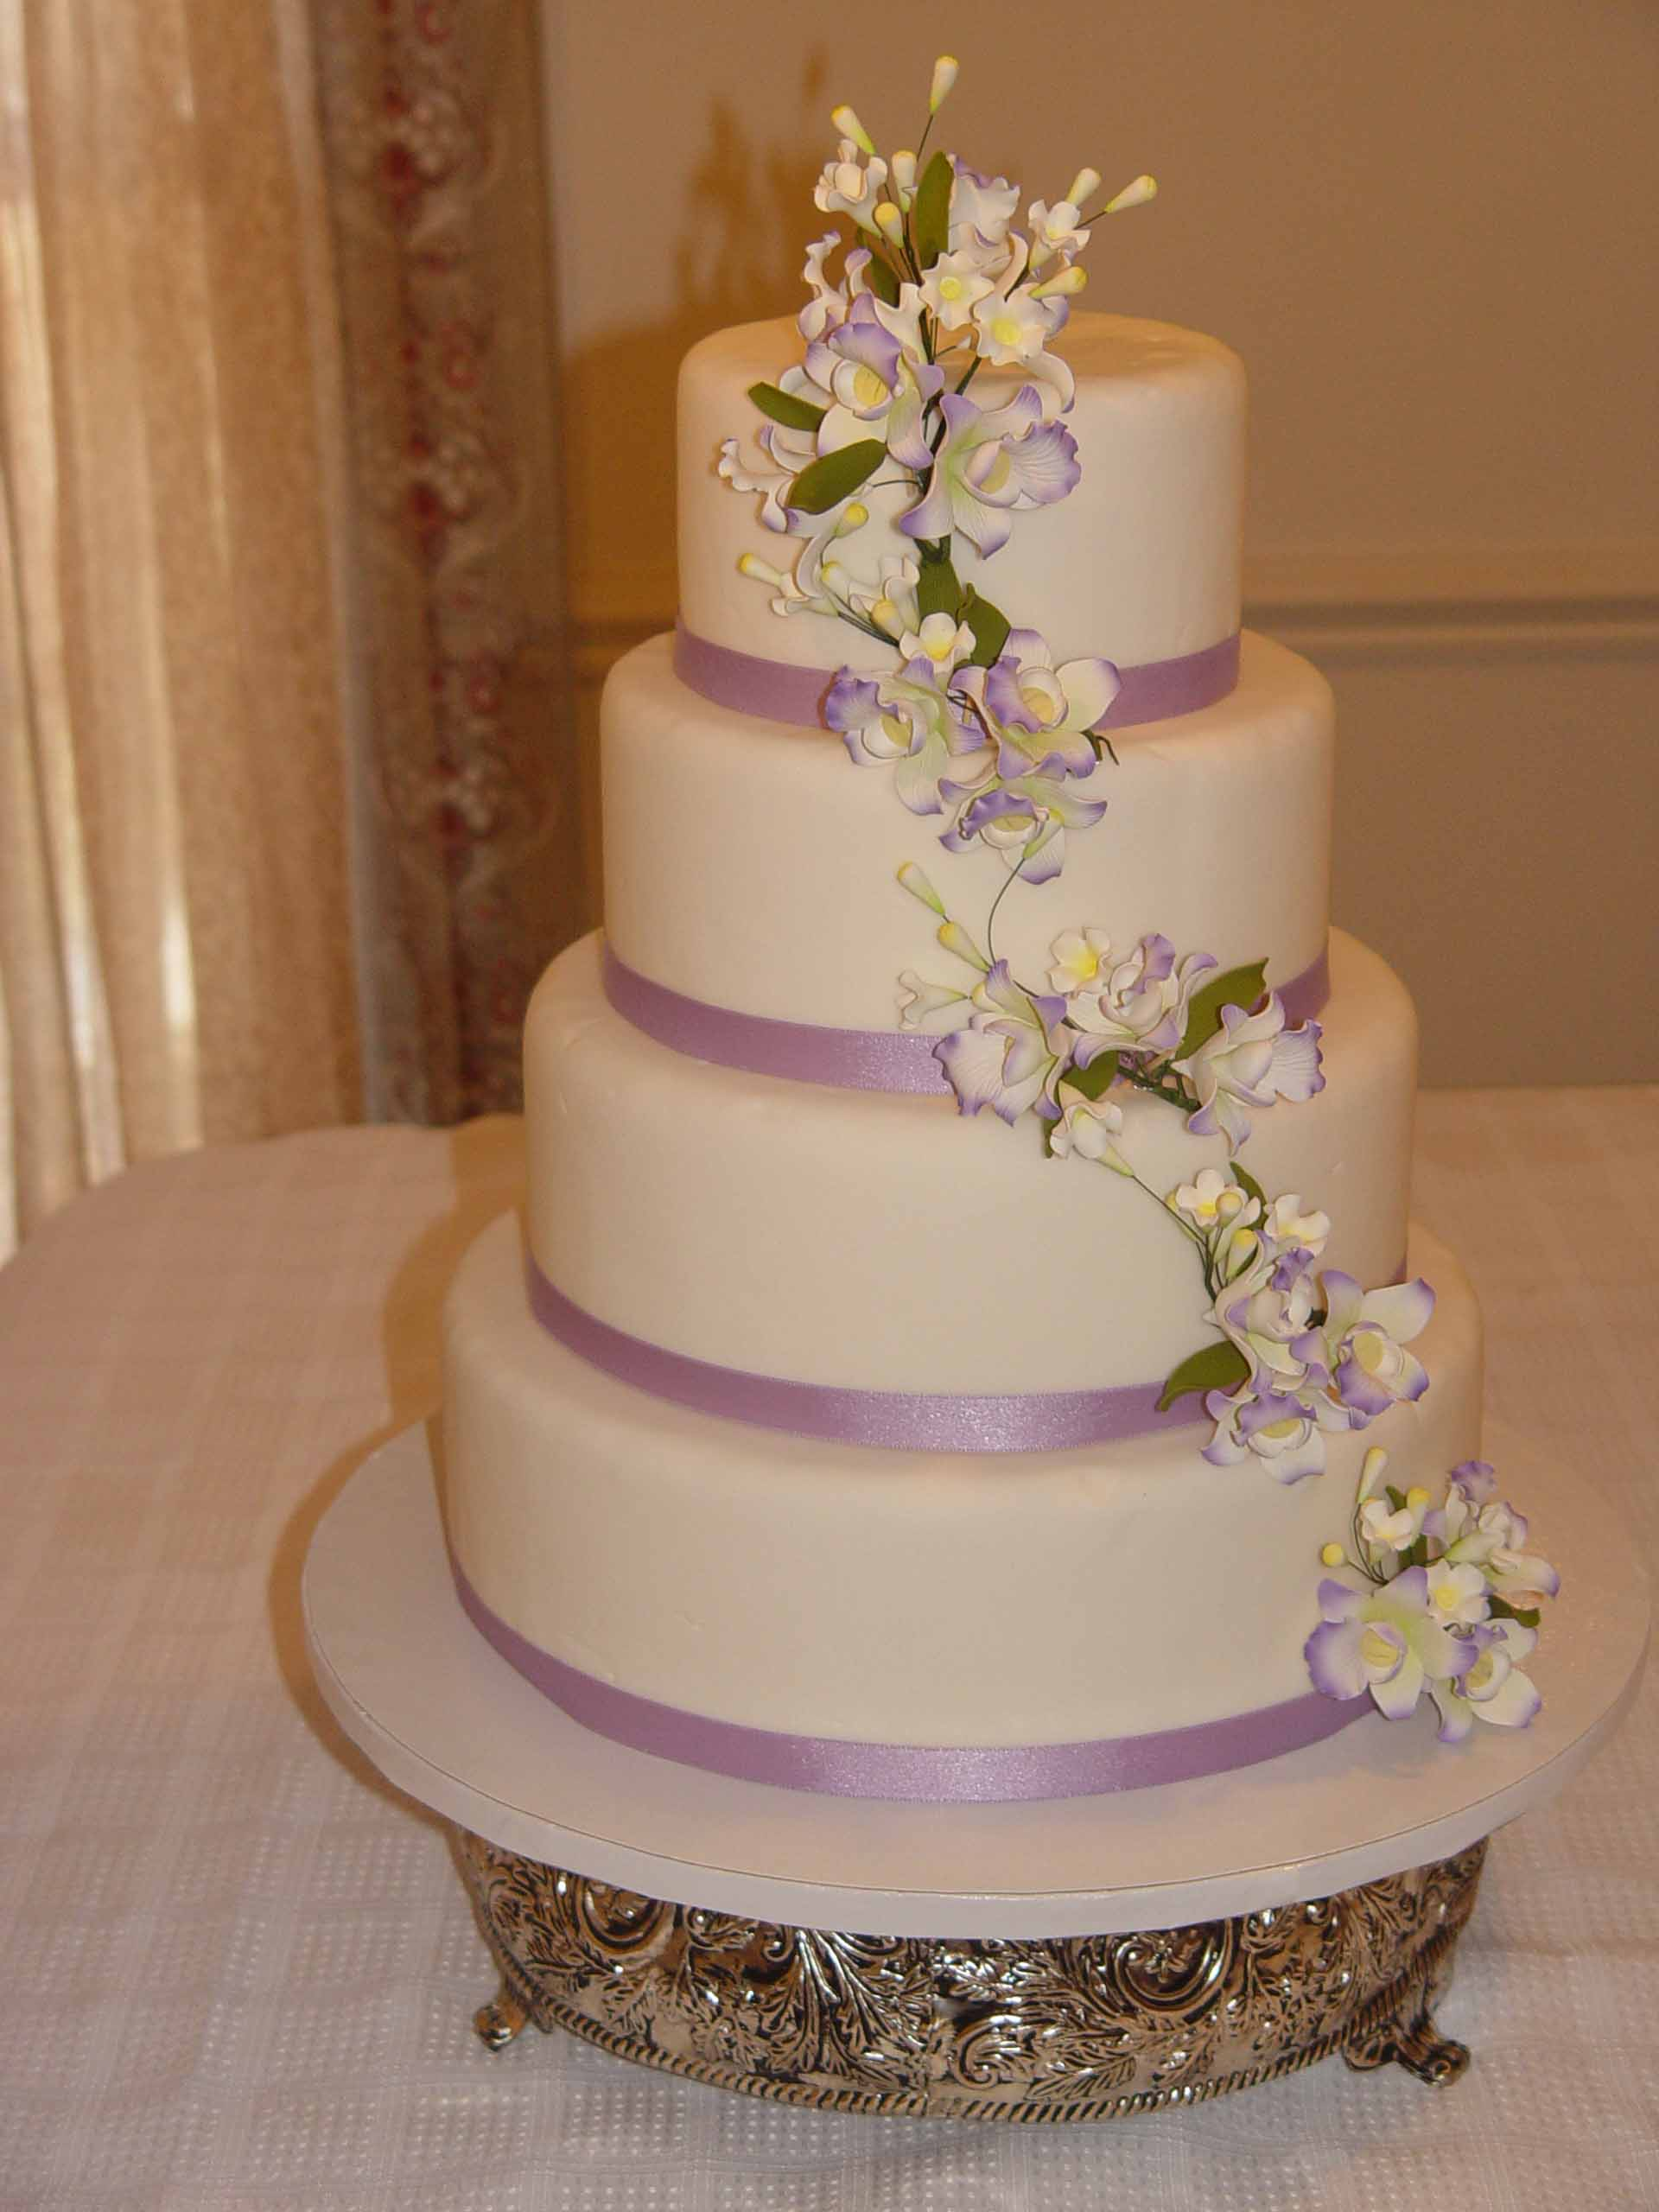 Lavender Orchids fondant Specialty Cakes and Desserts